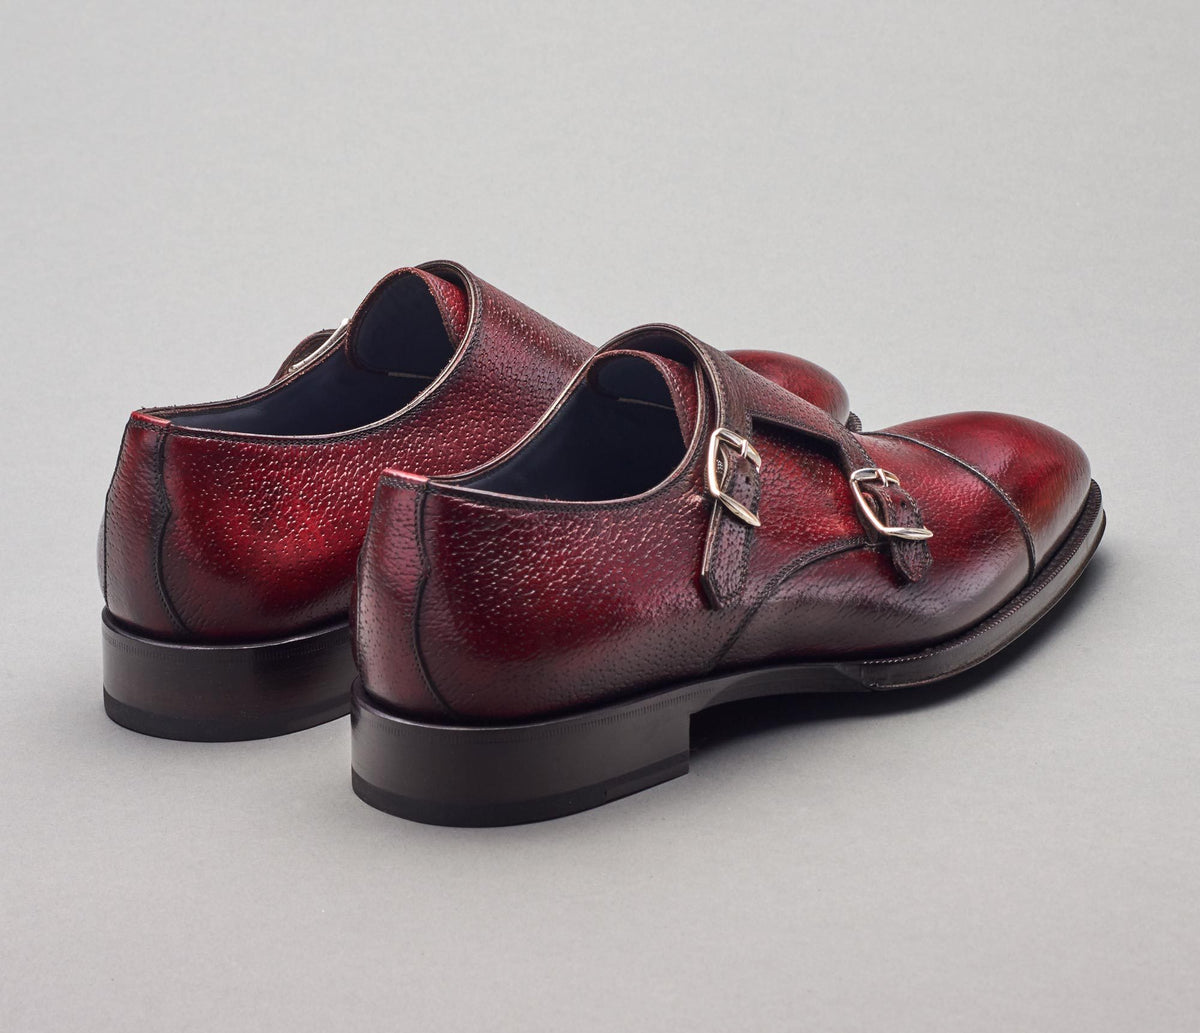 The Arezzo Oxblood Monk Strap Shoes